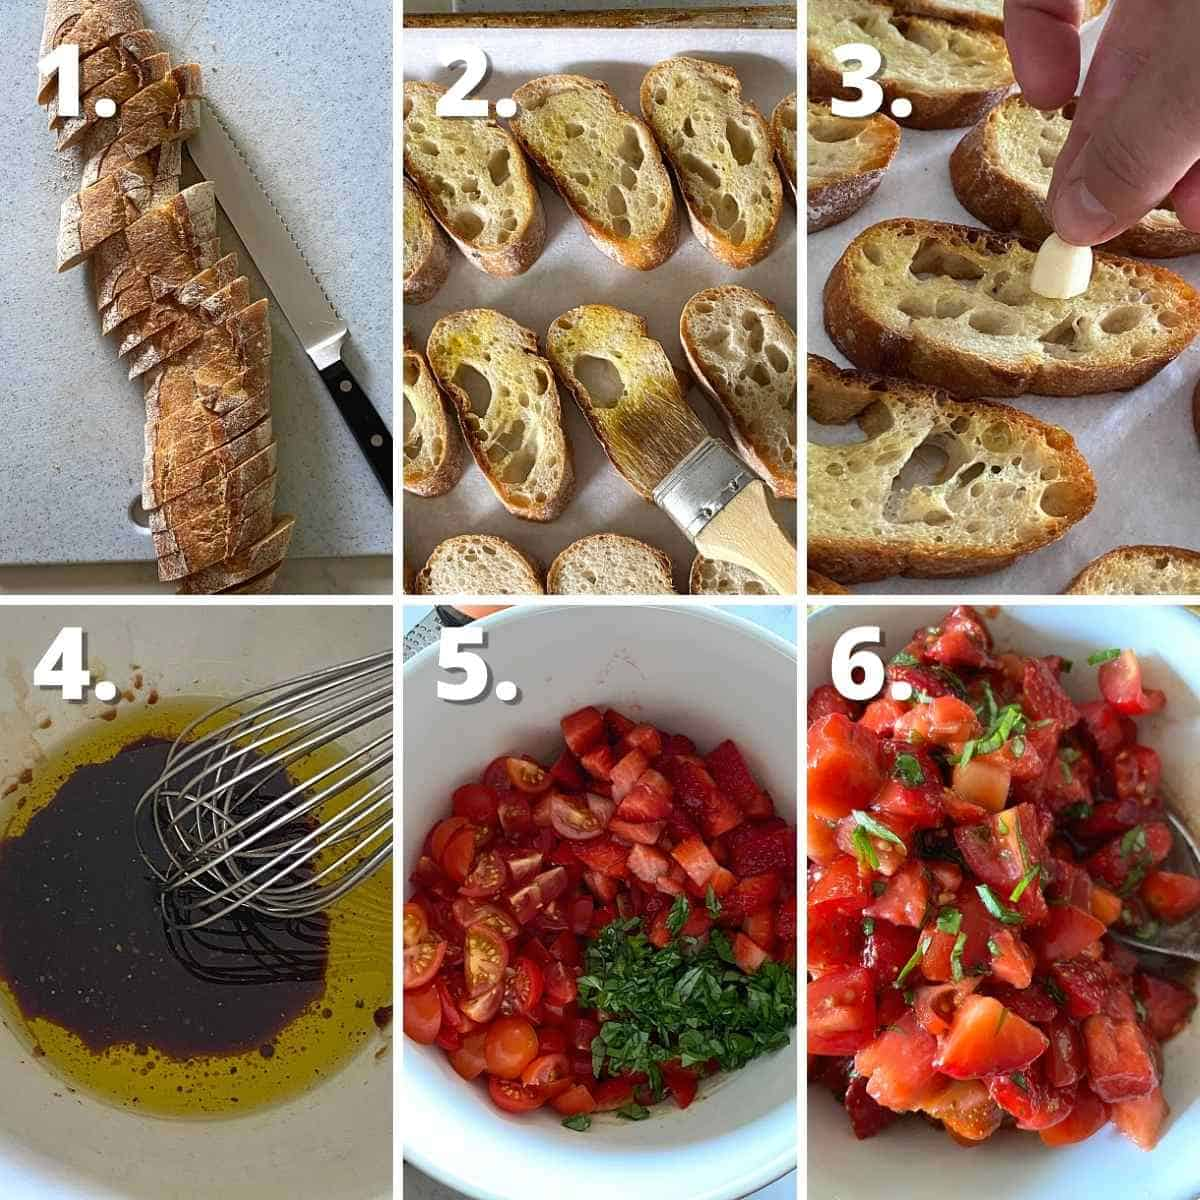 Process collage showing how to make garlic rubbed crostini and how to mix up strawberry tomato bruschetta.